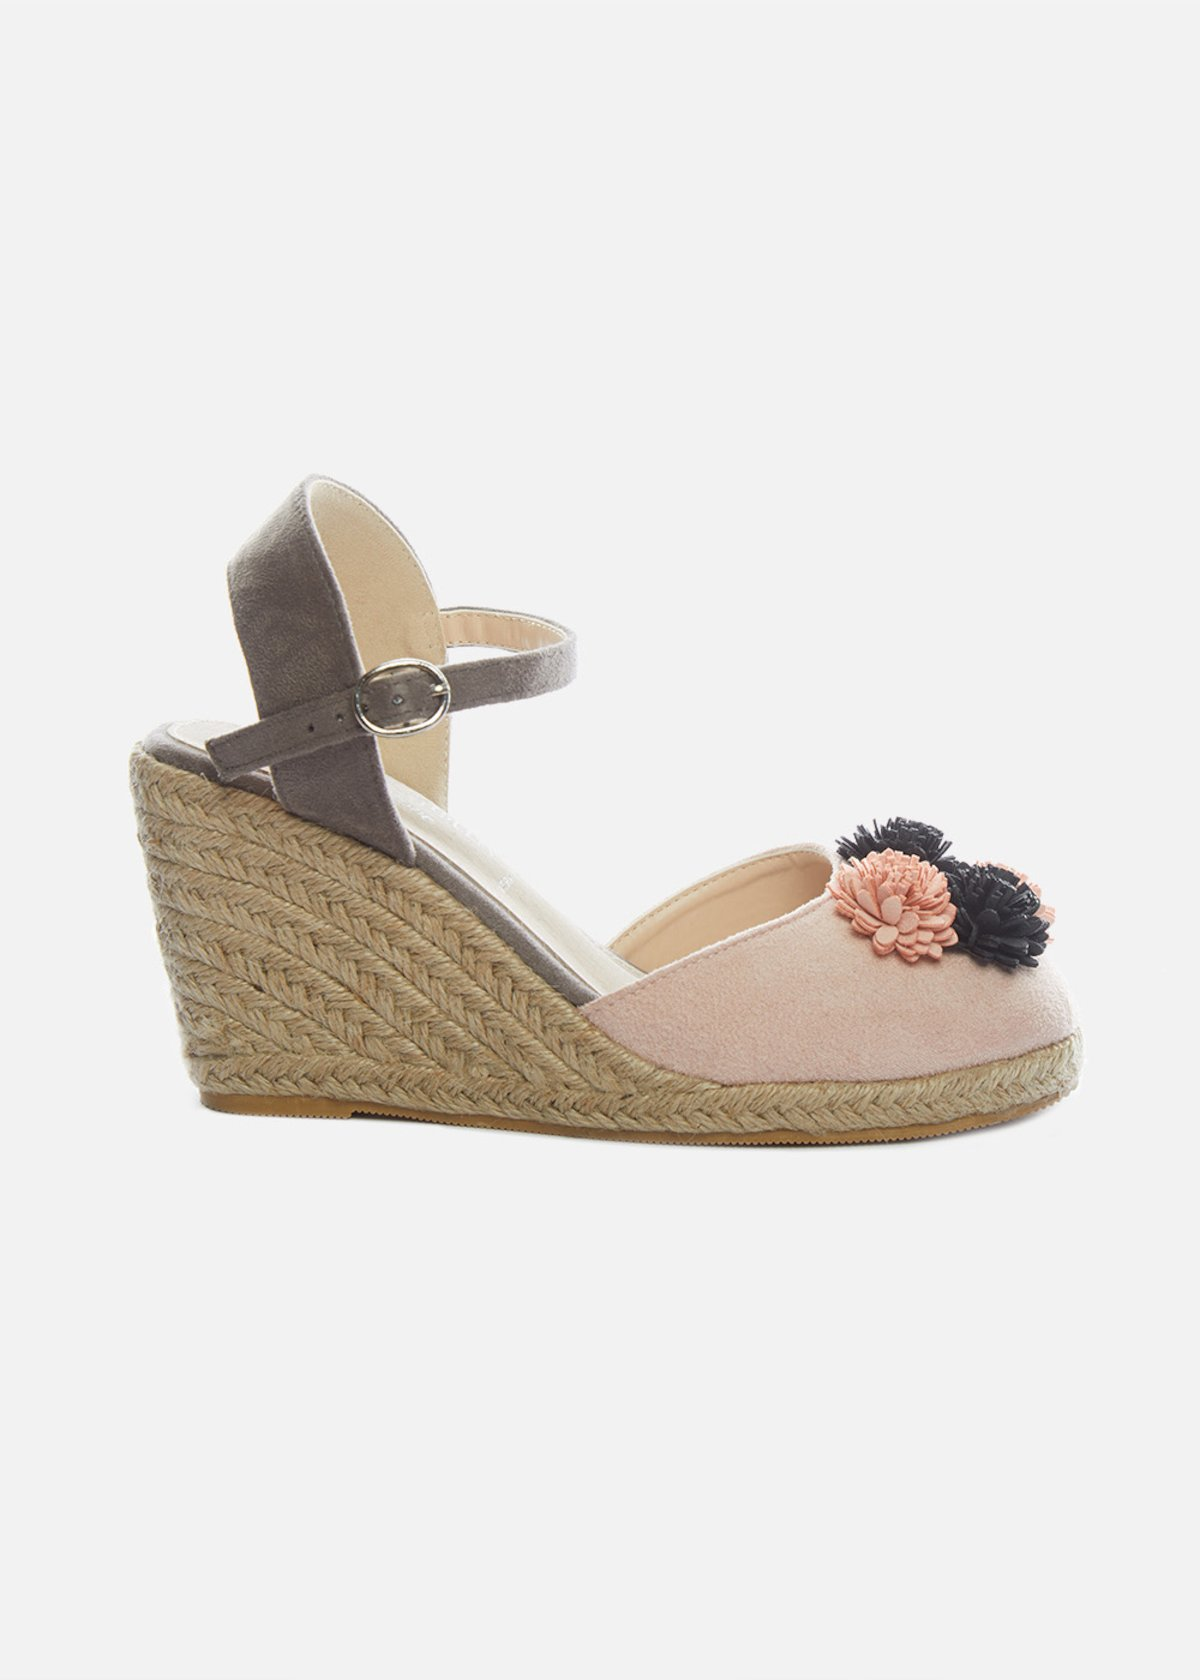 Straw wedge and floral design Soleya sandals